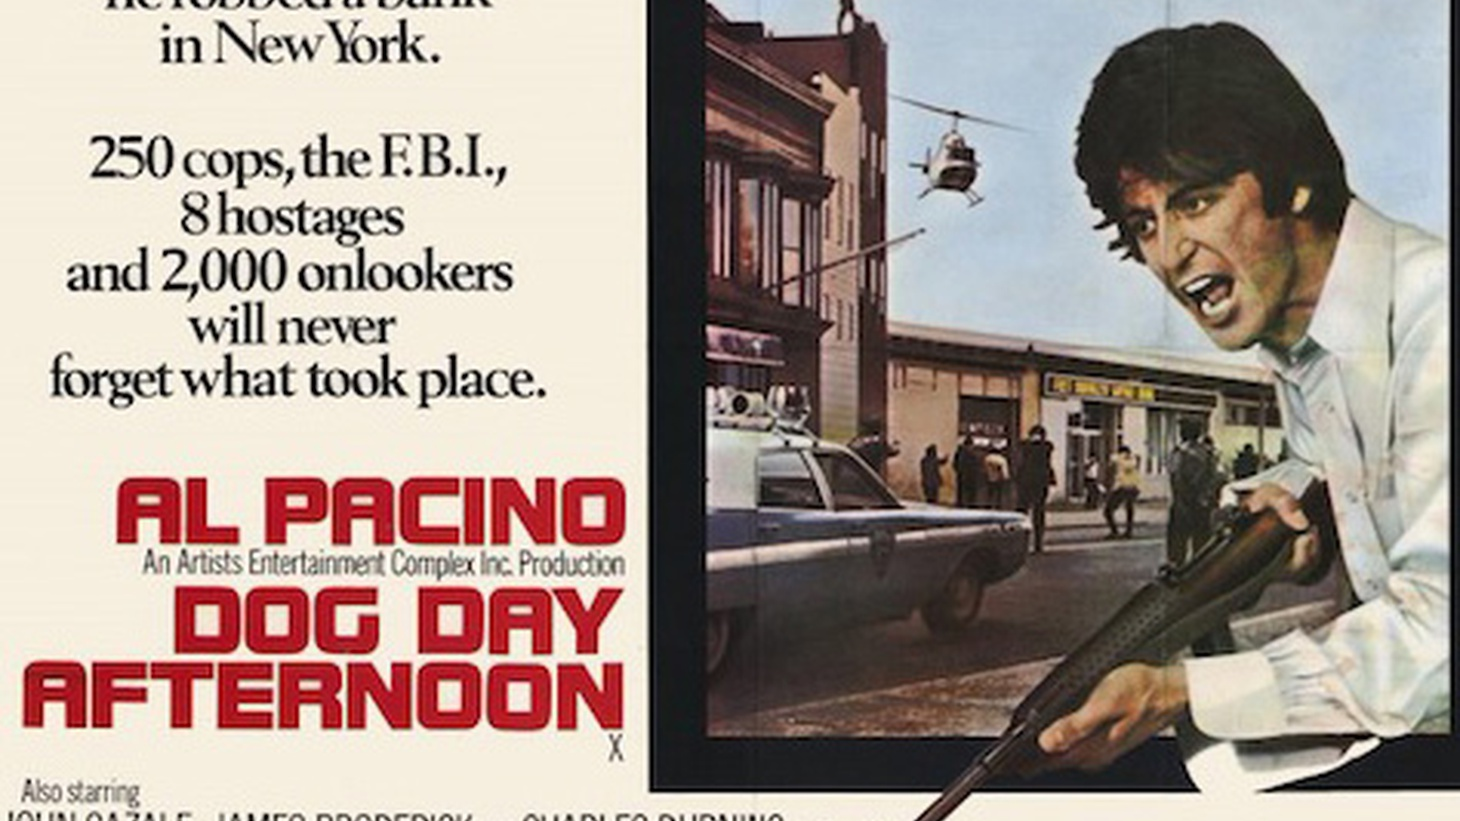 "A new documentary tells the story of the outrageous real life bank robber that inspired Al Pacino's character in the movie ""Dog Day Afternoon."" Also, did Russian hackers pull off the biggest hack ever? Should we be freaking out? And more..."